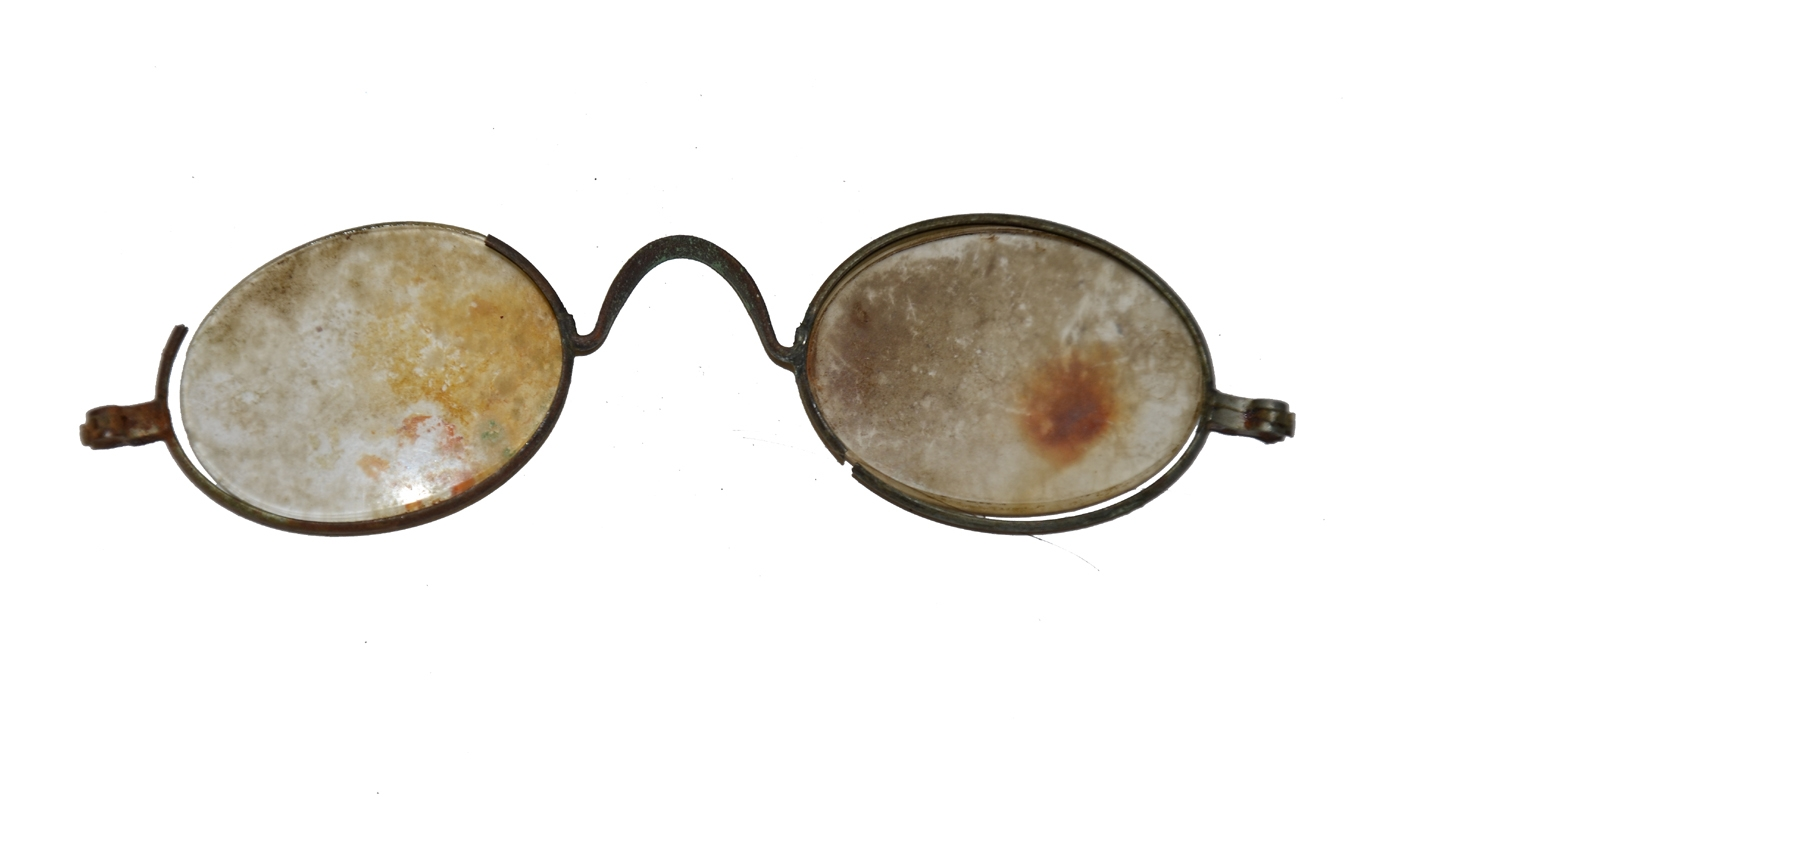 RELIC EYE GLASSES RECOVERED FROM GETTYSBURG